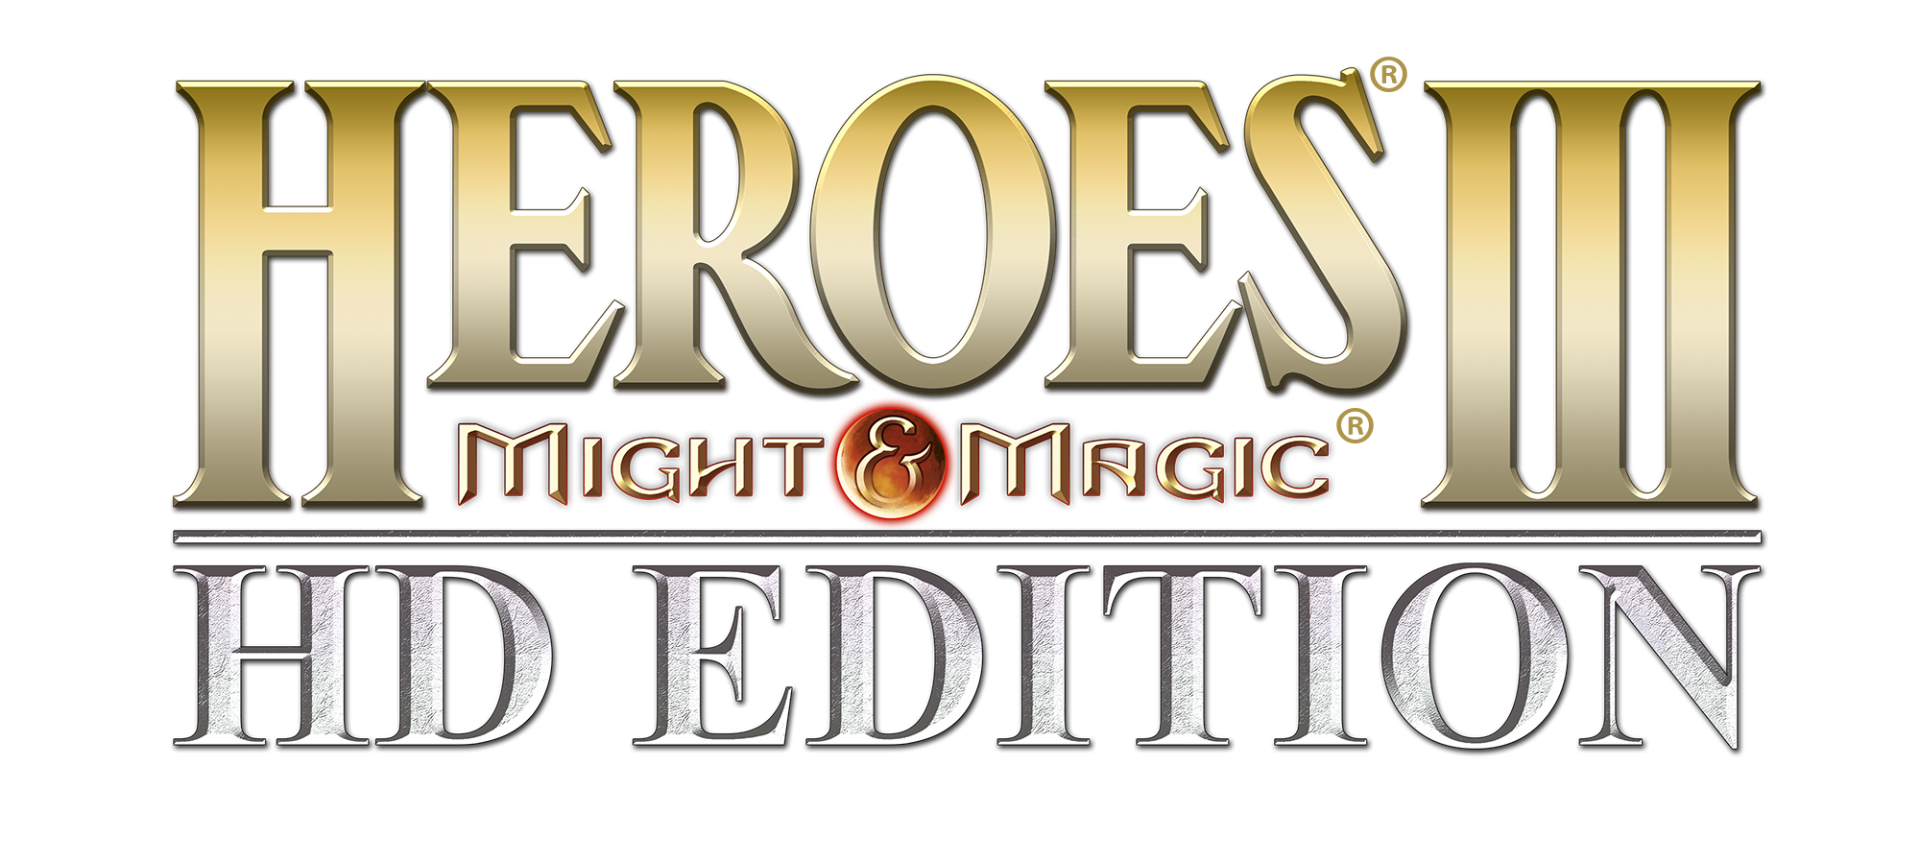 Heroes of Might & Magic III HD Edition Out Now